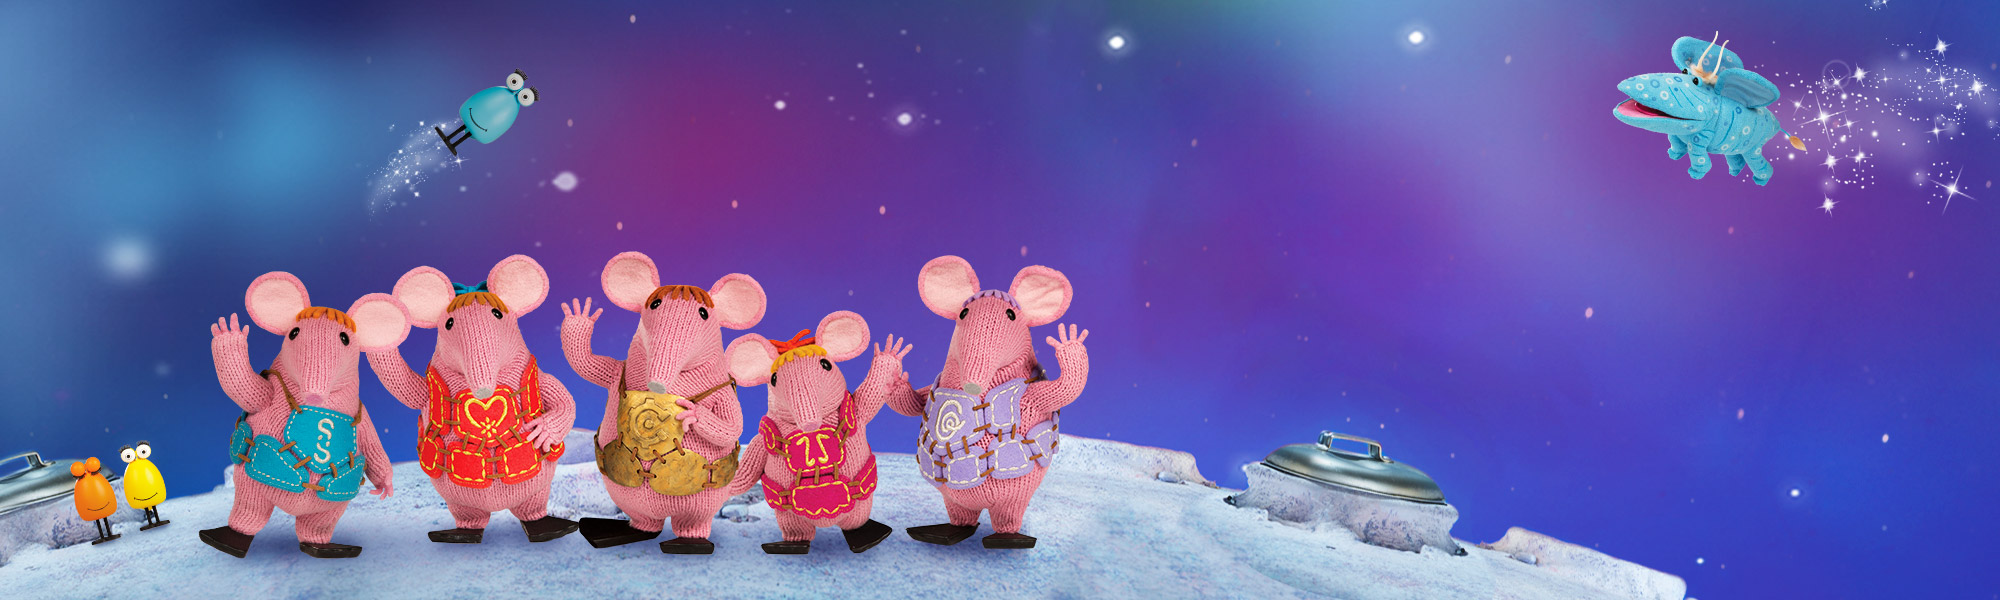 Clangers_Main_Slider1